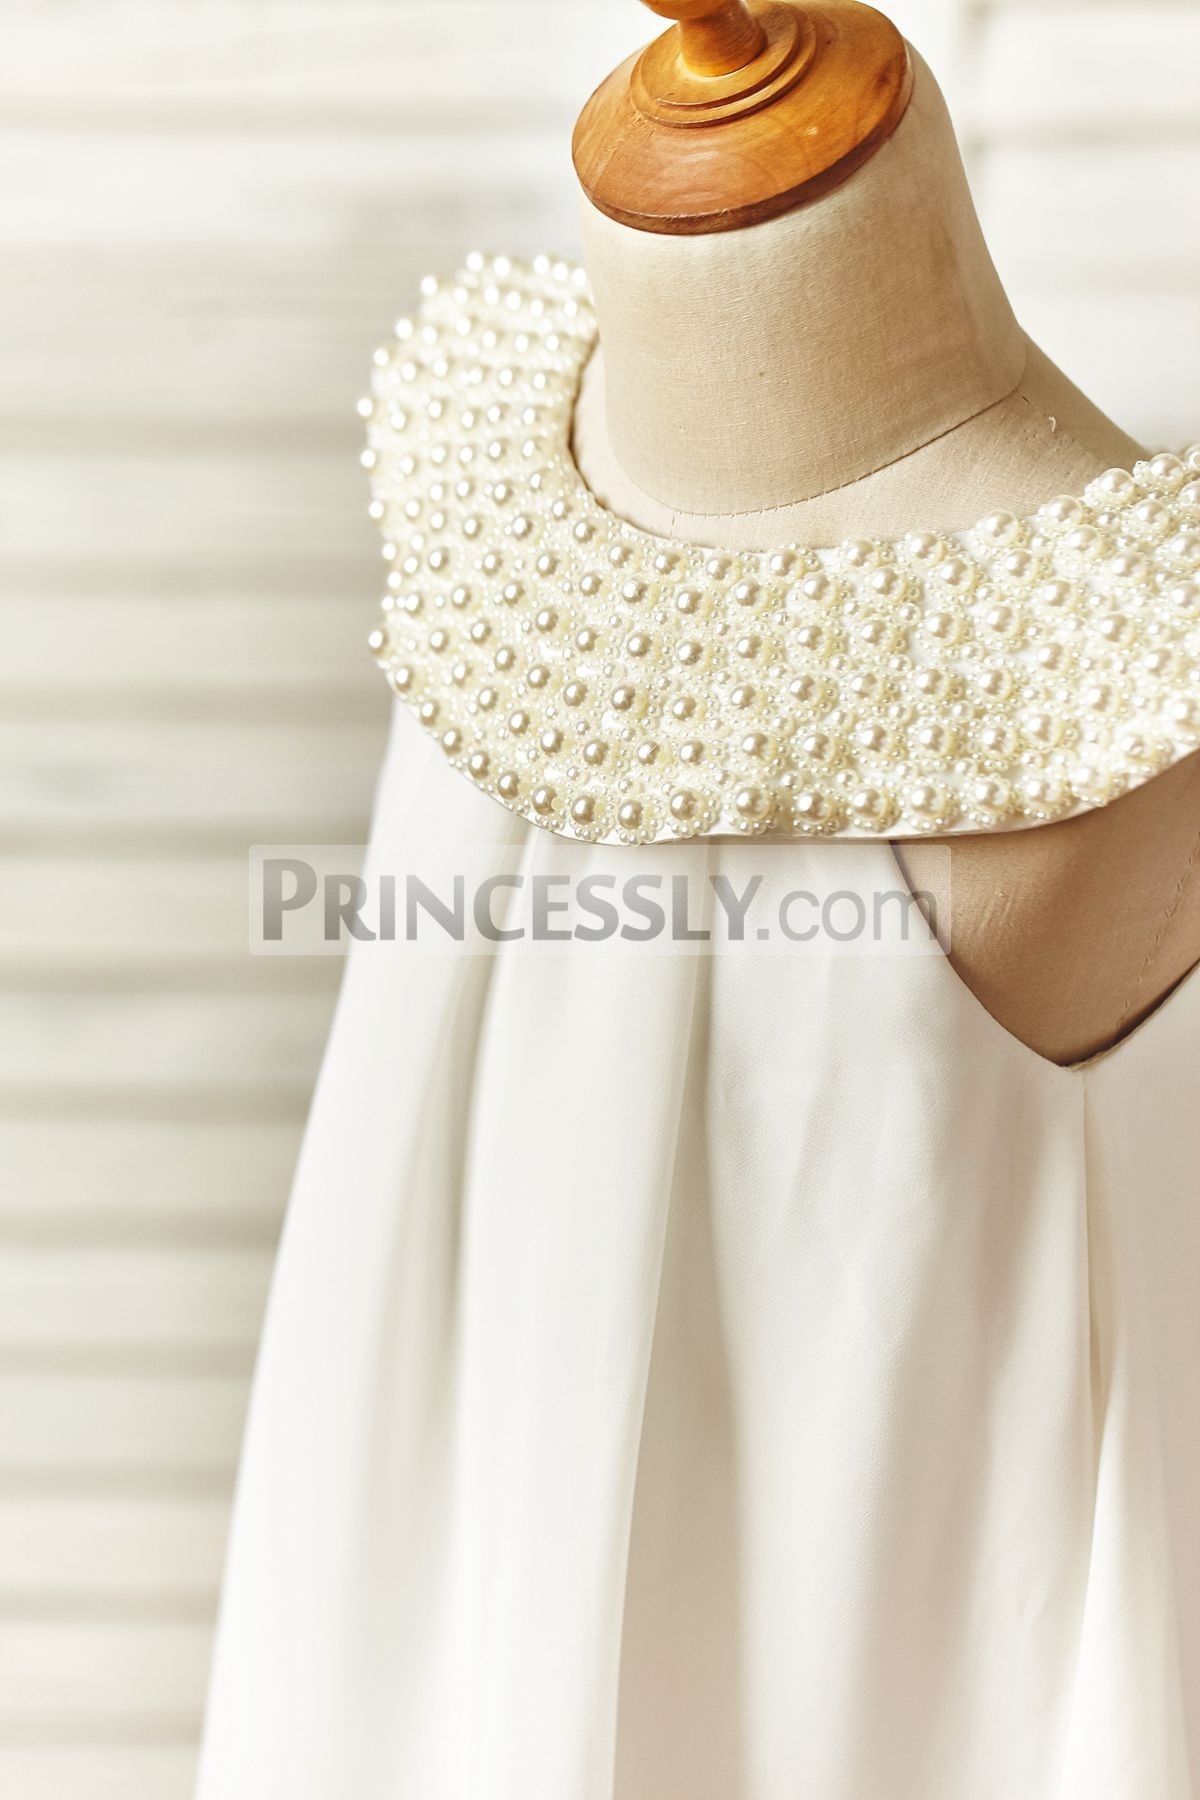 Pearled neckline